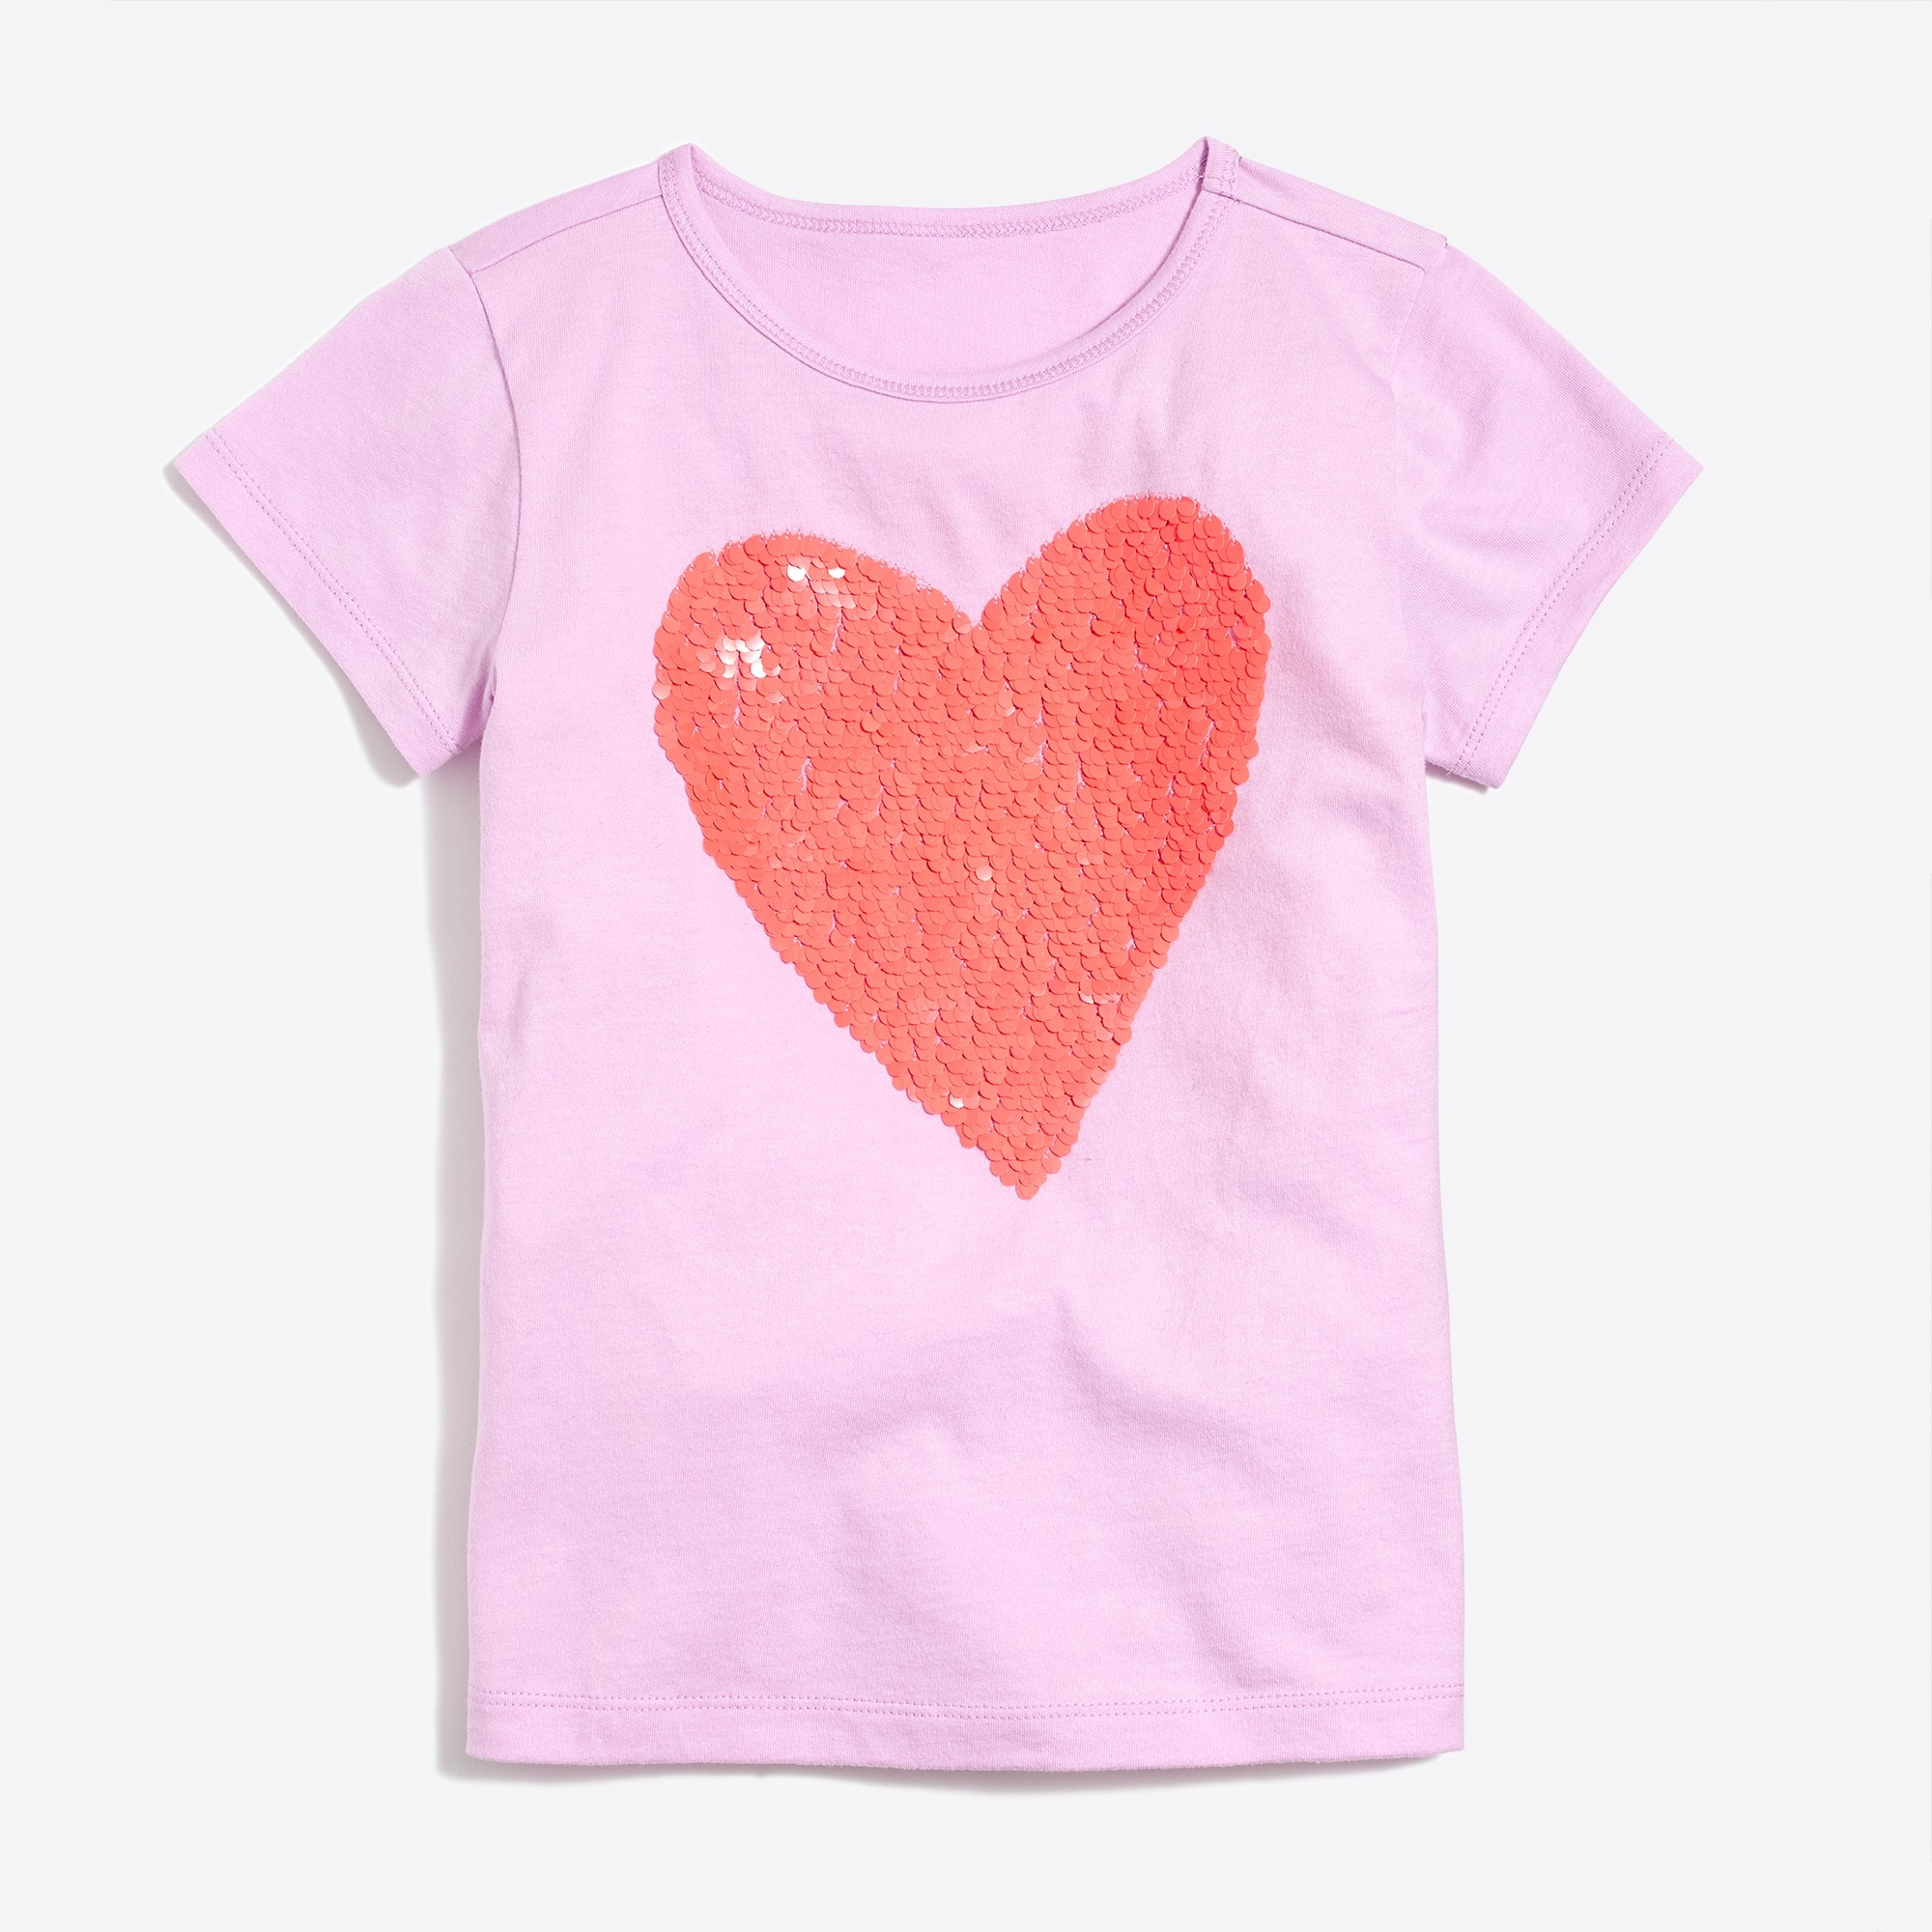 girls' sequin heart graphic t-shirt : factorygirls keepsake t-shirts